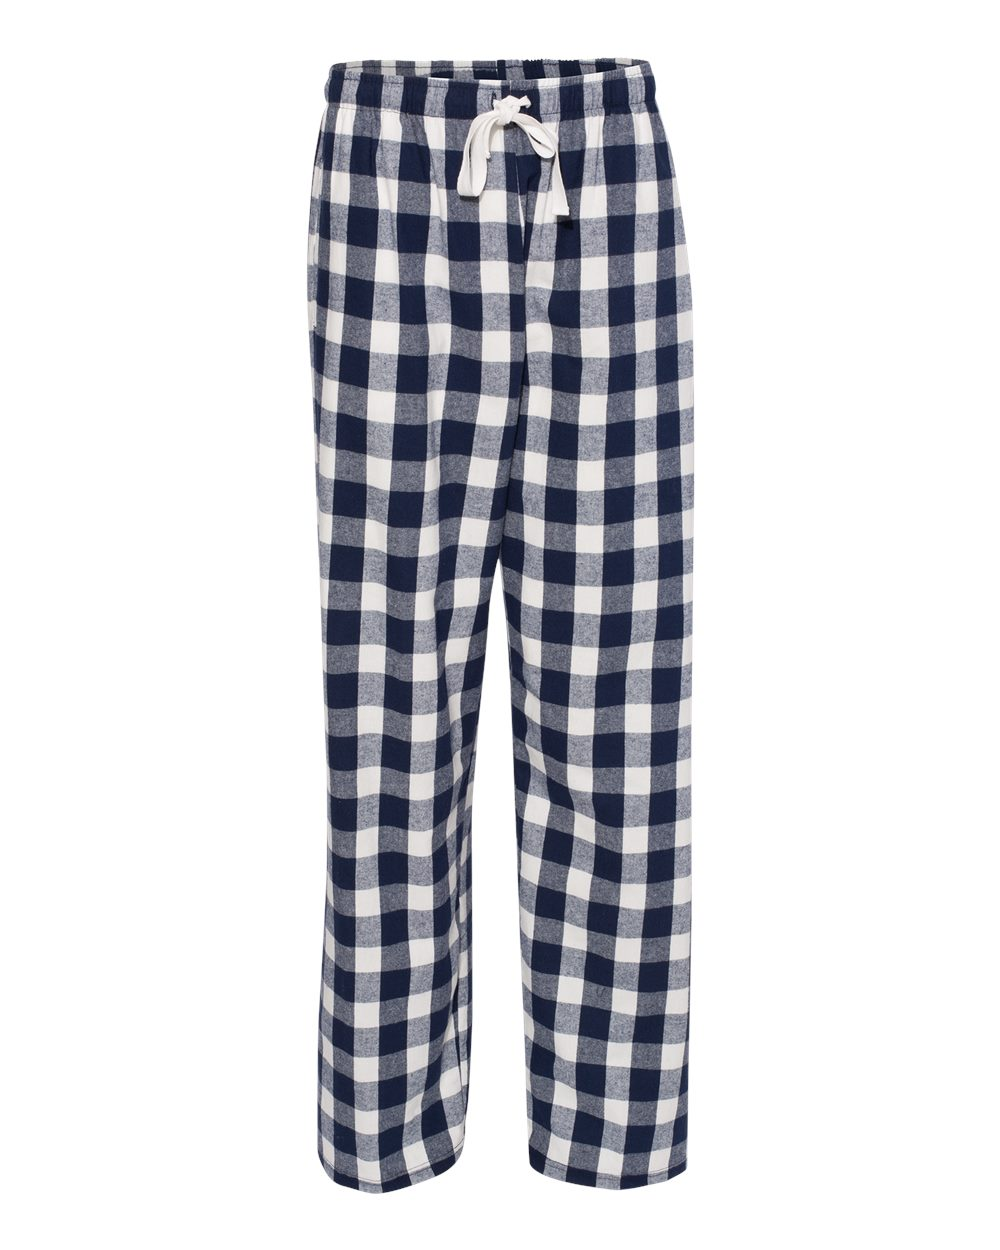 Boxercraft-Unisex-Flannel-Pants-With-Pockets-Pajama-Pants-F20-up-to-2XL thumbnail 27